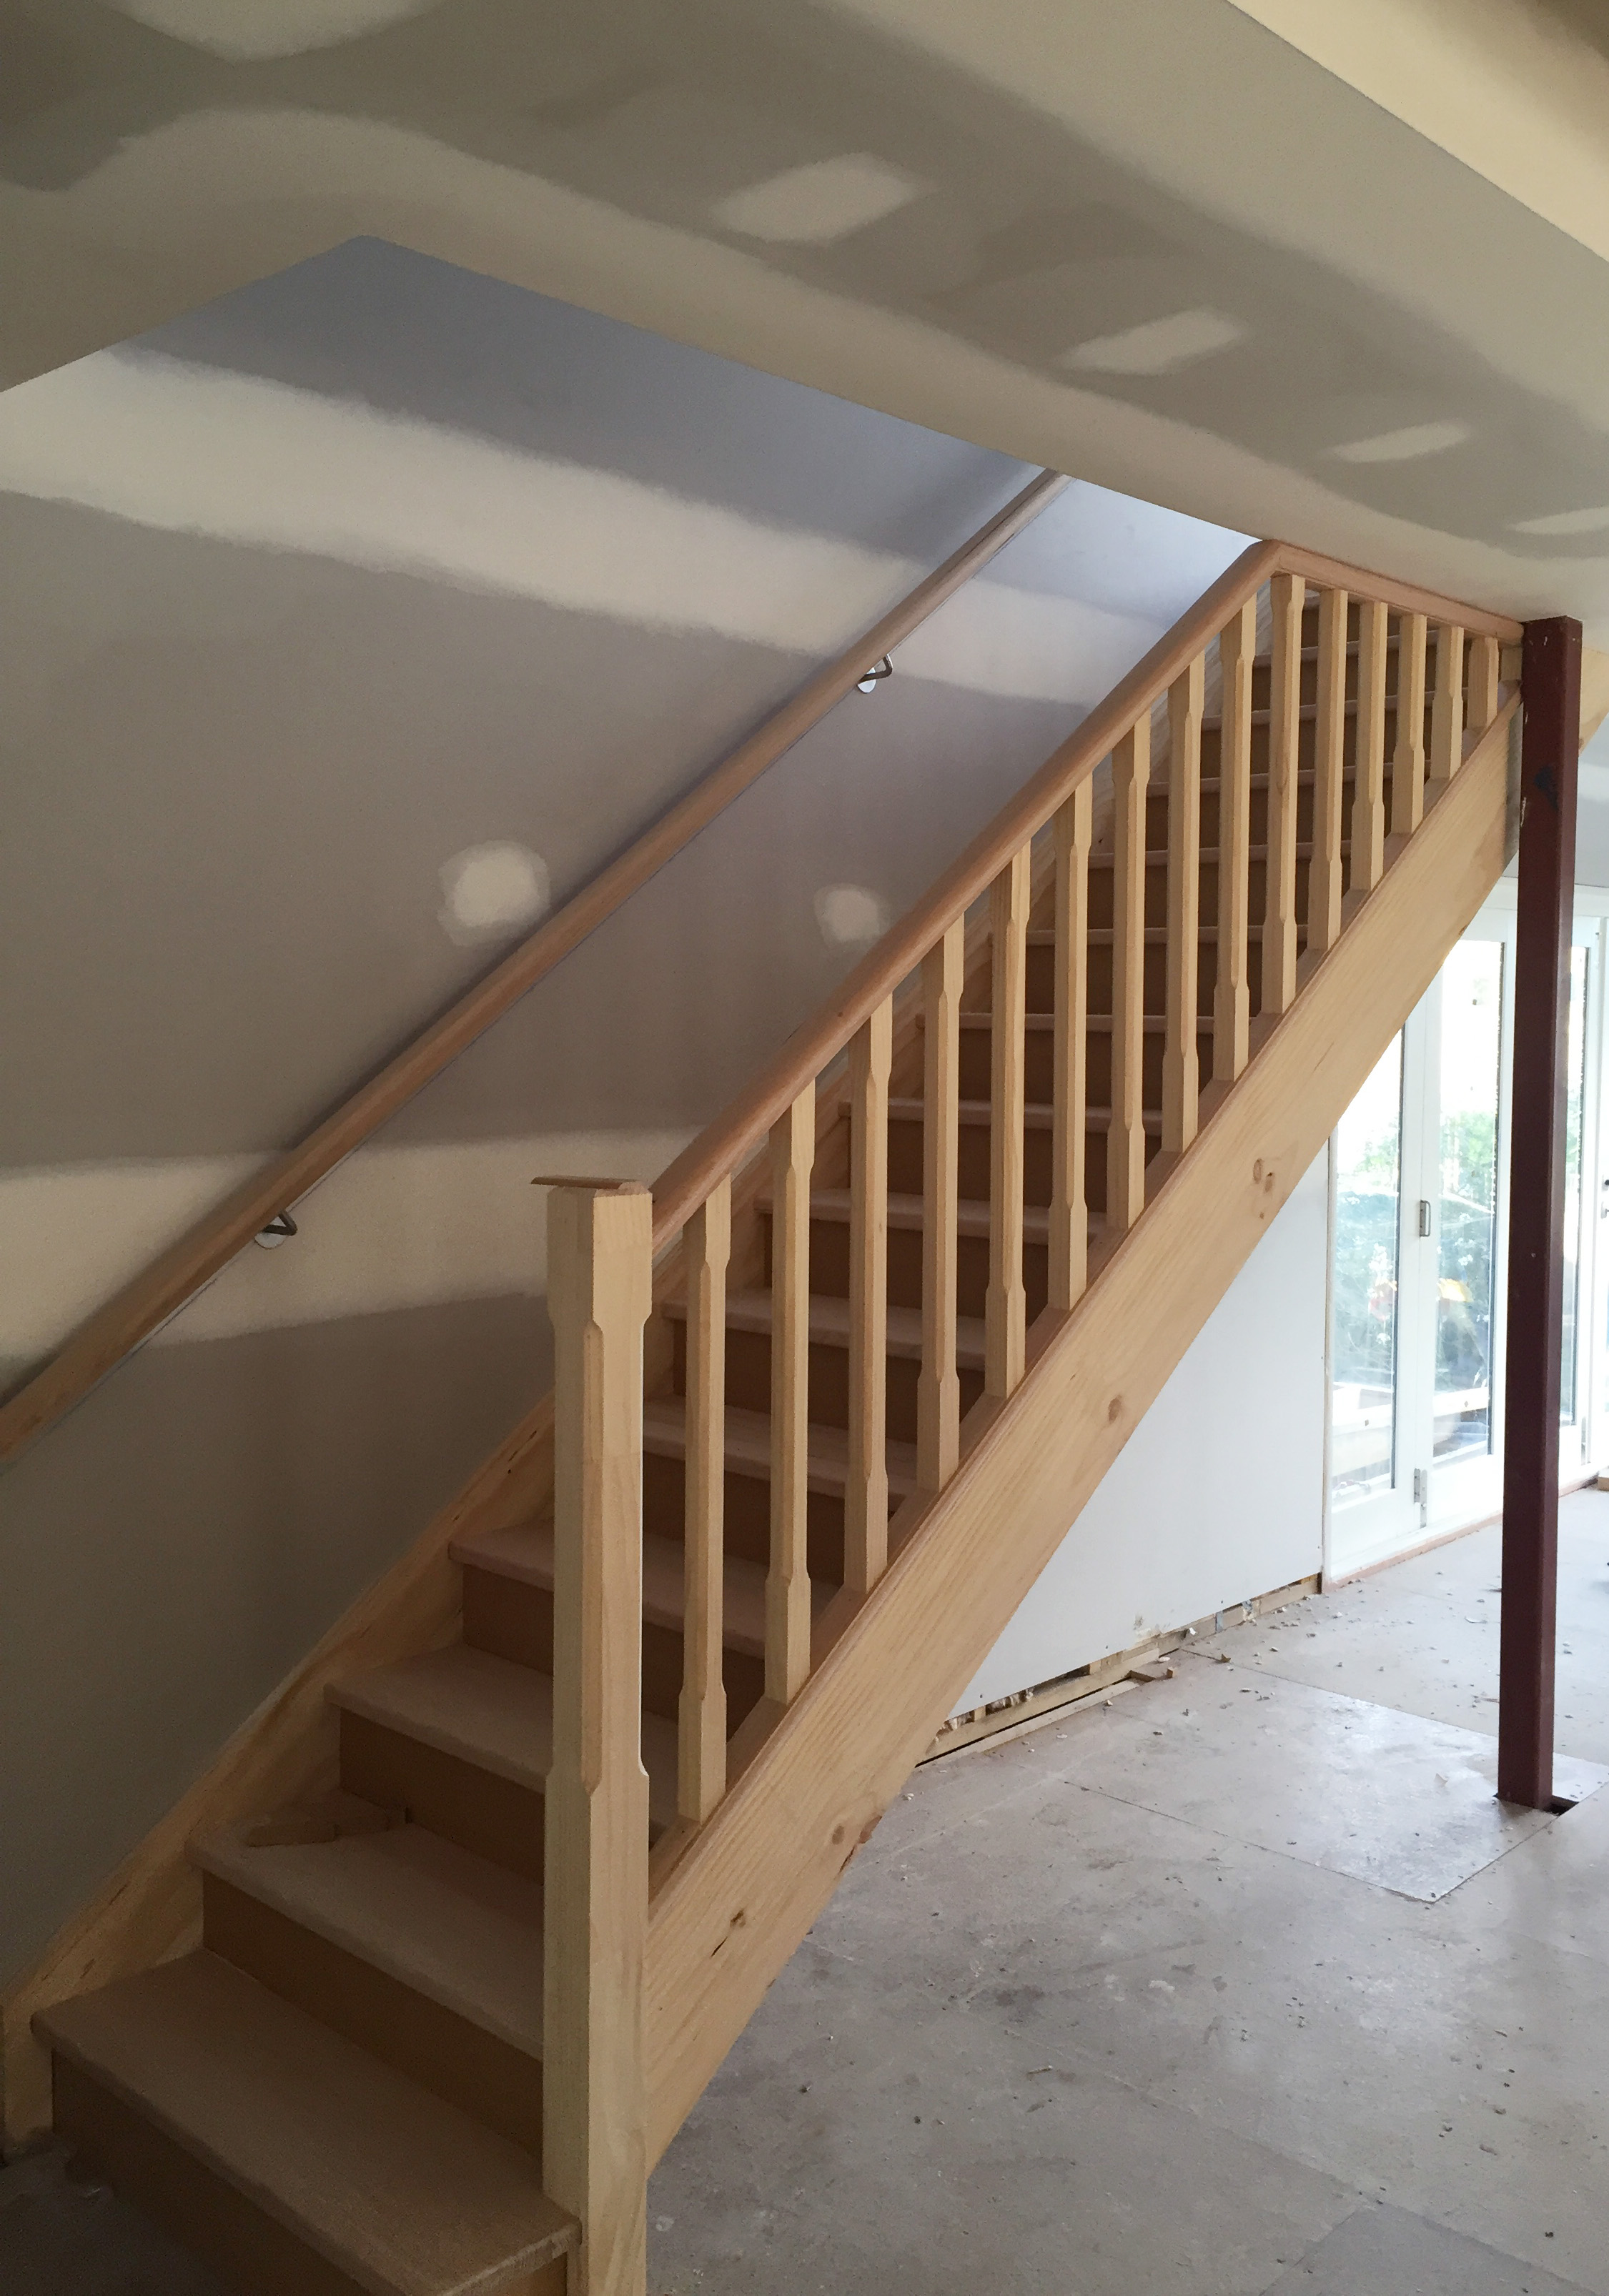 New changes to our home during our renovation - The Organised You